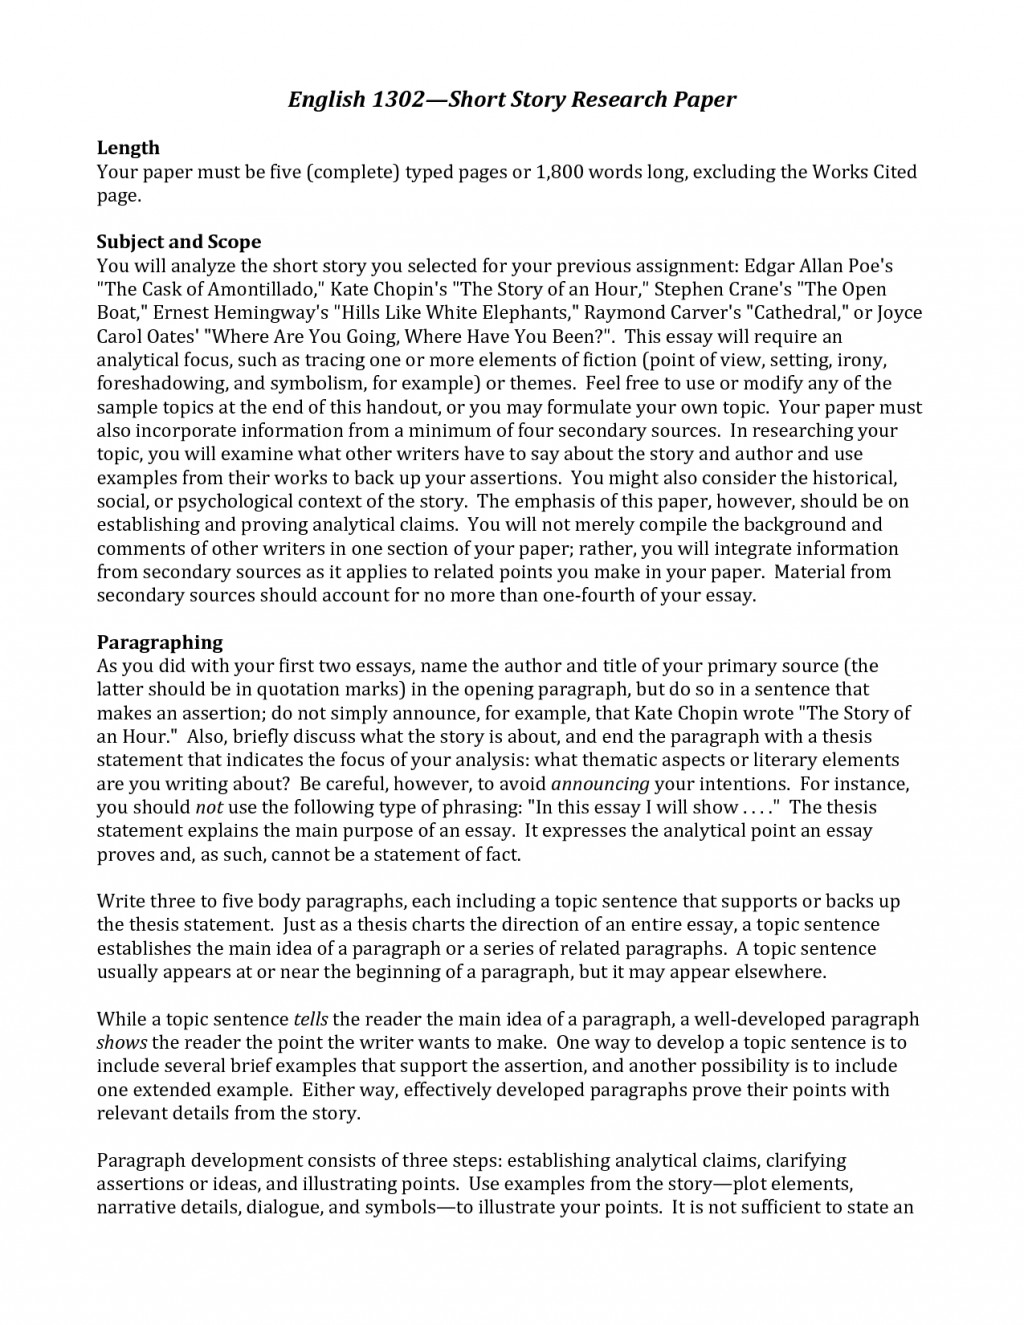 008 Essay Research Paper Topics Shocking Sample Technology About Business Economics Large